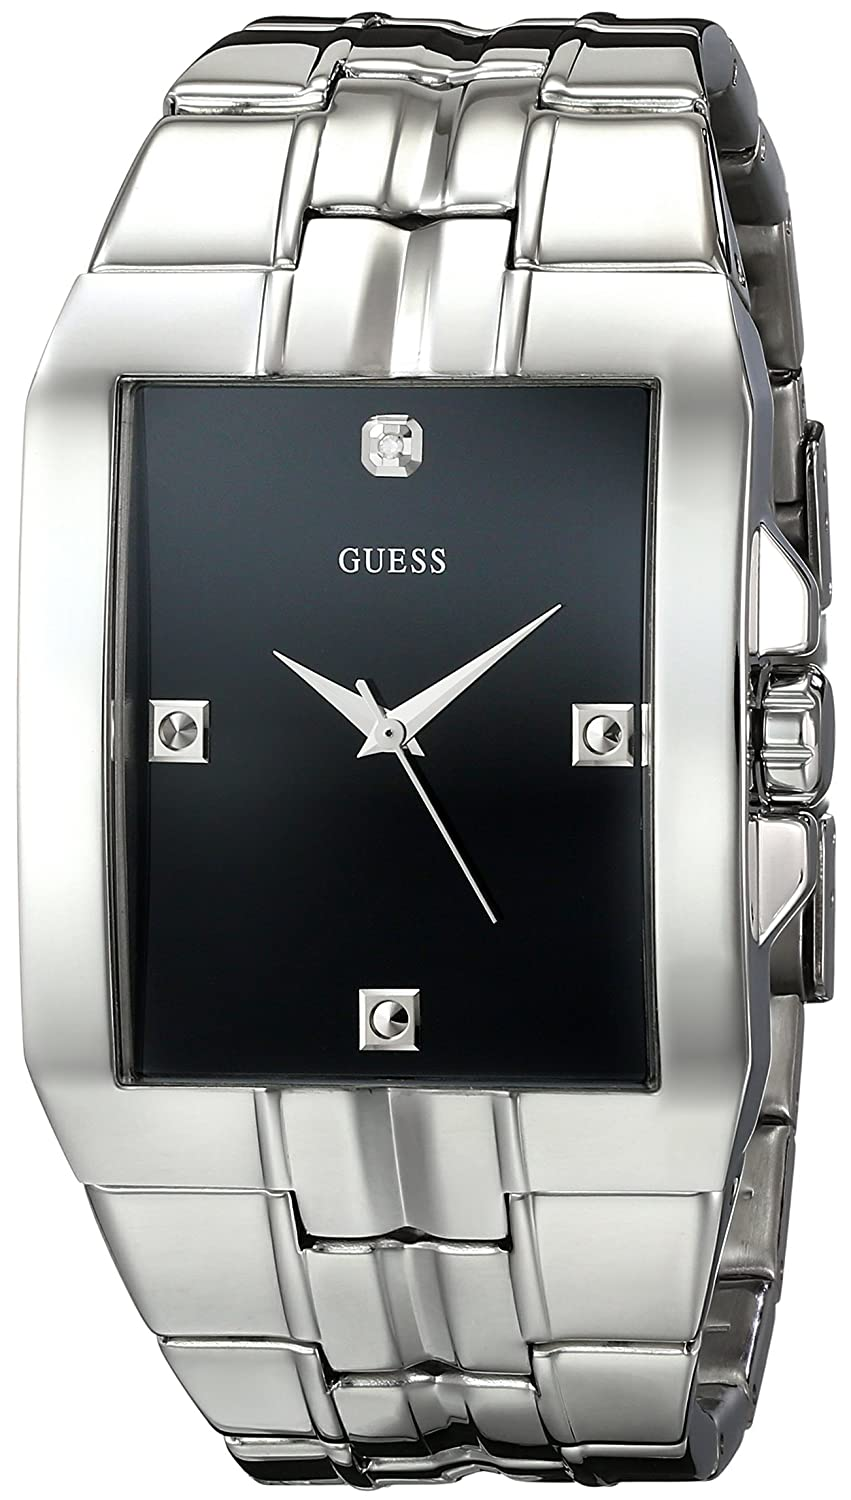 rectangular shop watch mens armani silver watches emporio